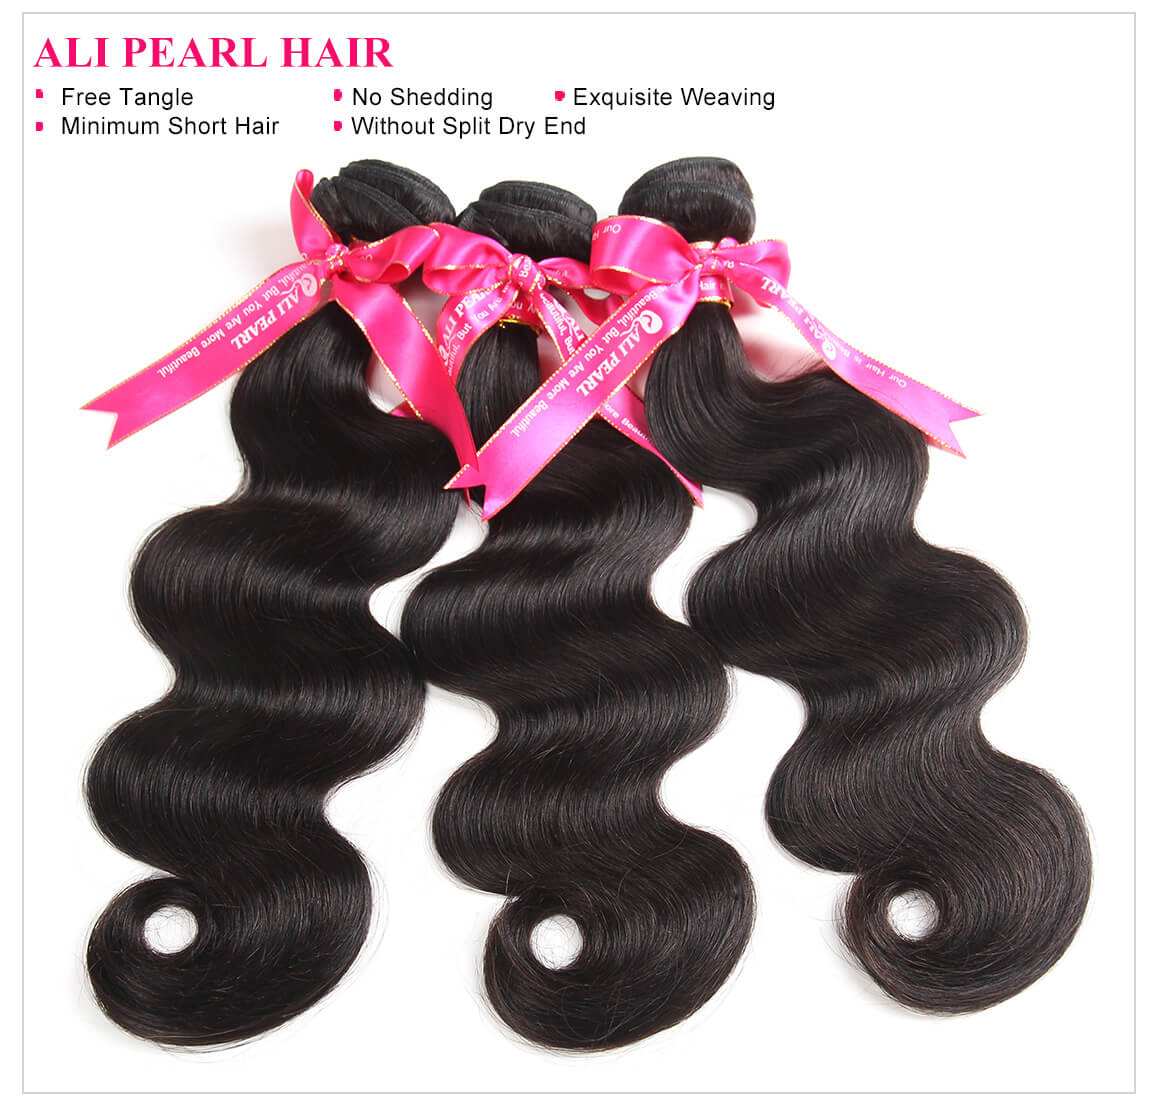 Alipearl Brazilian Body Wave 3 Bundles With Frontal Closure Brazilian Hair Weave Bundles With Frontal 13x4 Remy Hair Extension 3/4 Bundles With Closure Hair Extensions & Wigs